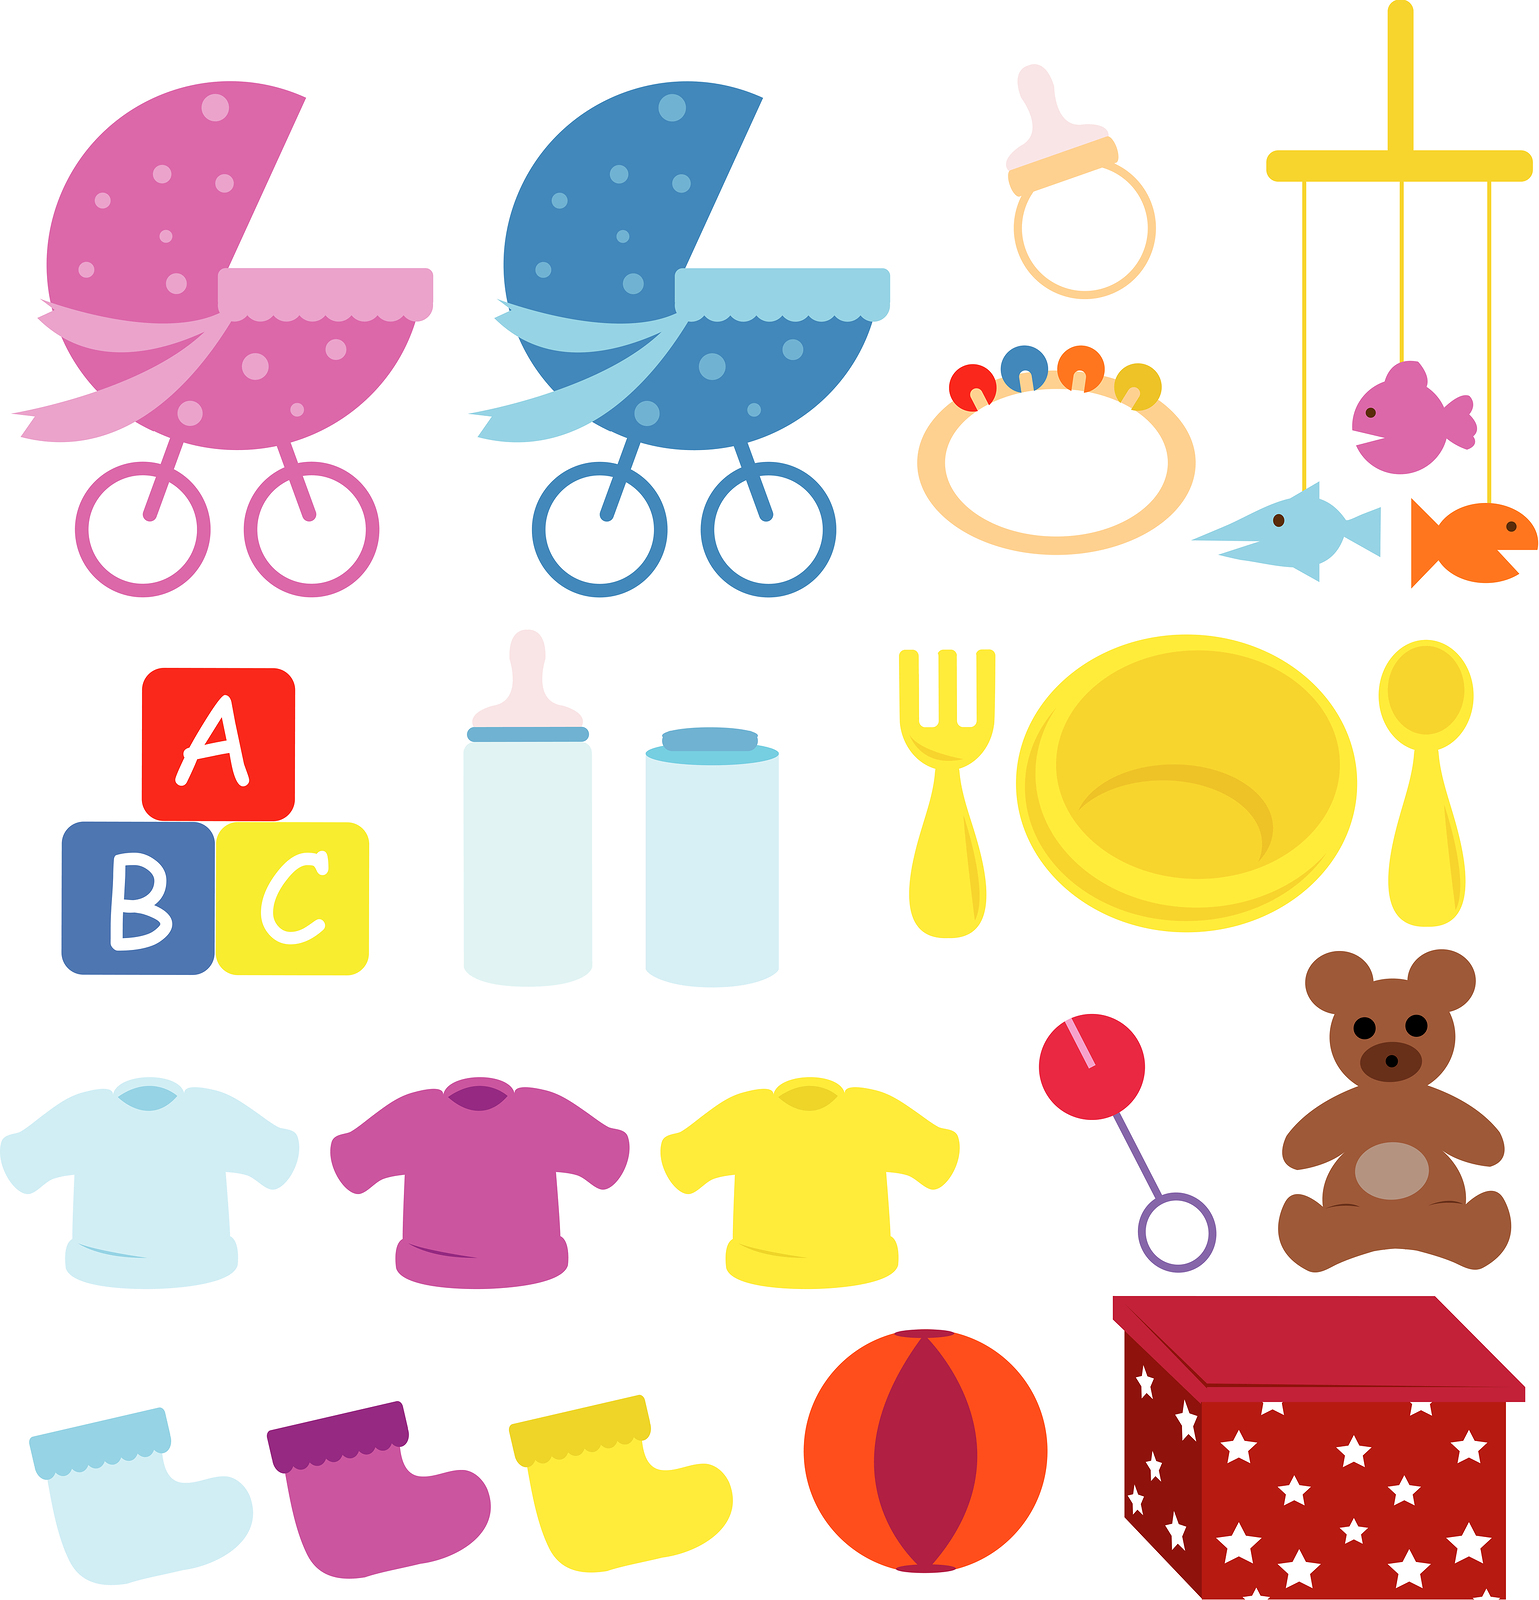 Free Baby Items Cliparts, Download Free Clip Art, Free Clip Art on.